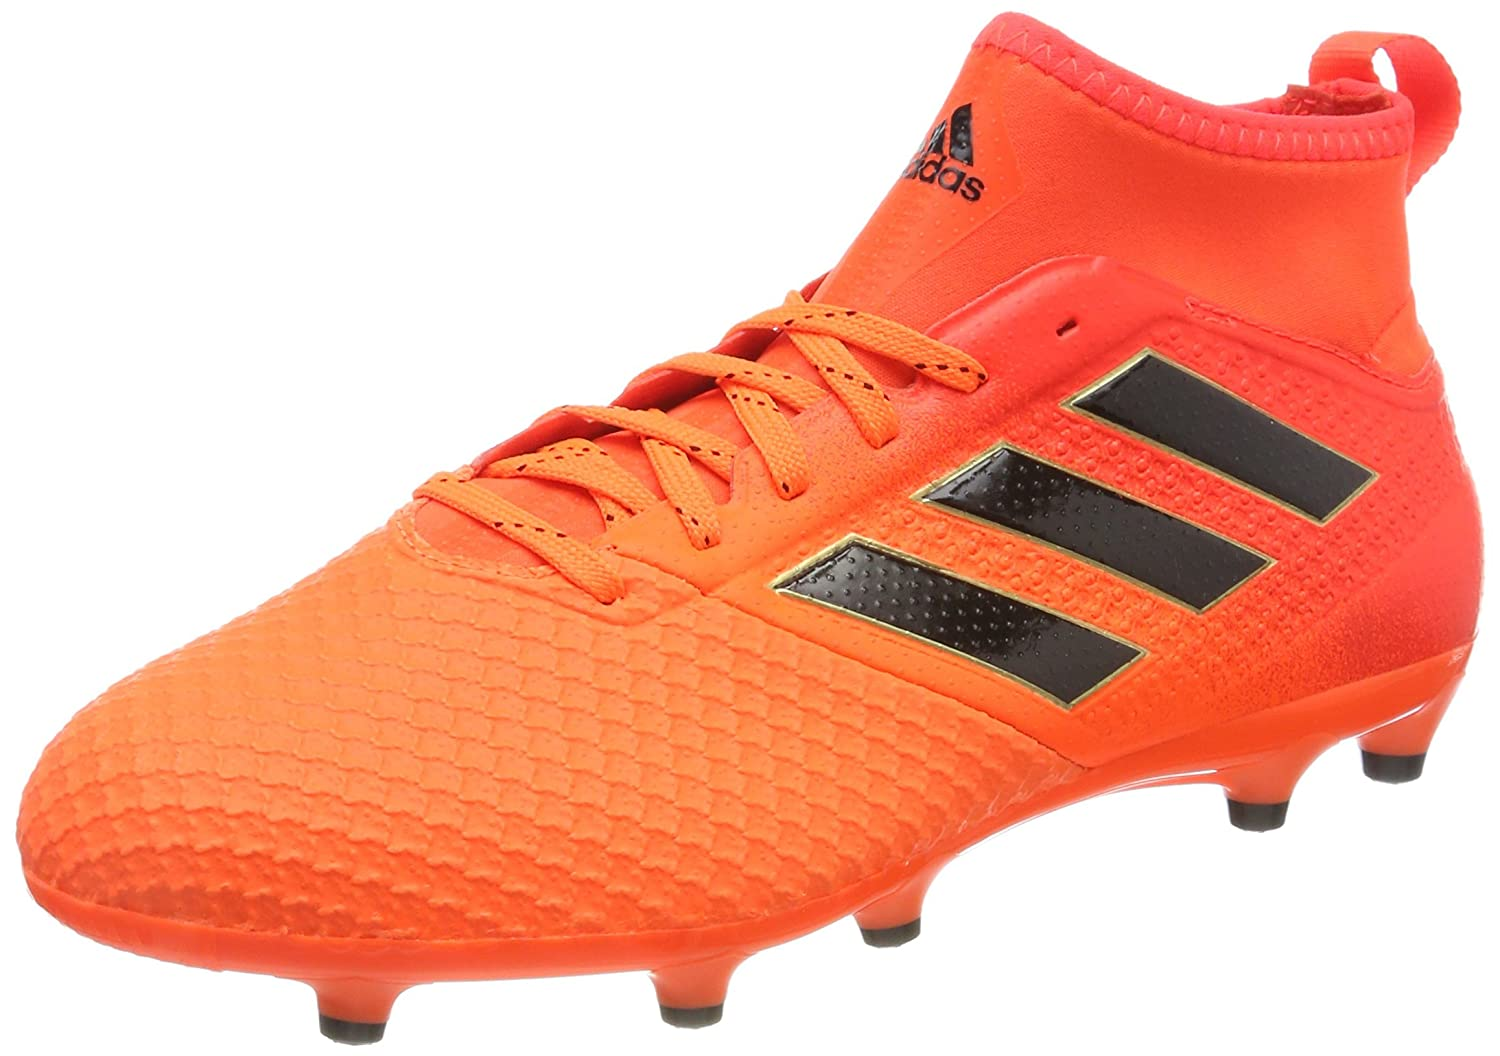 Adidas Ace 17.3 FG, Chaussures de Football Homme S77065